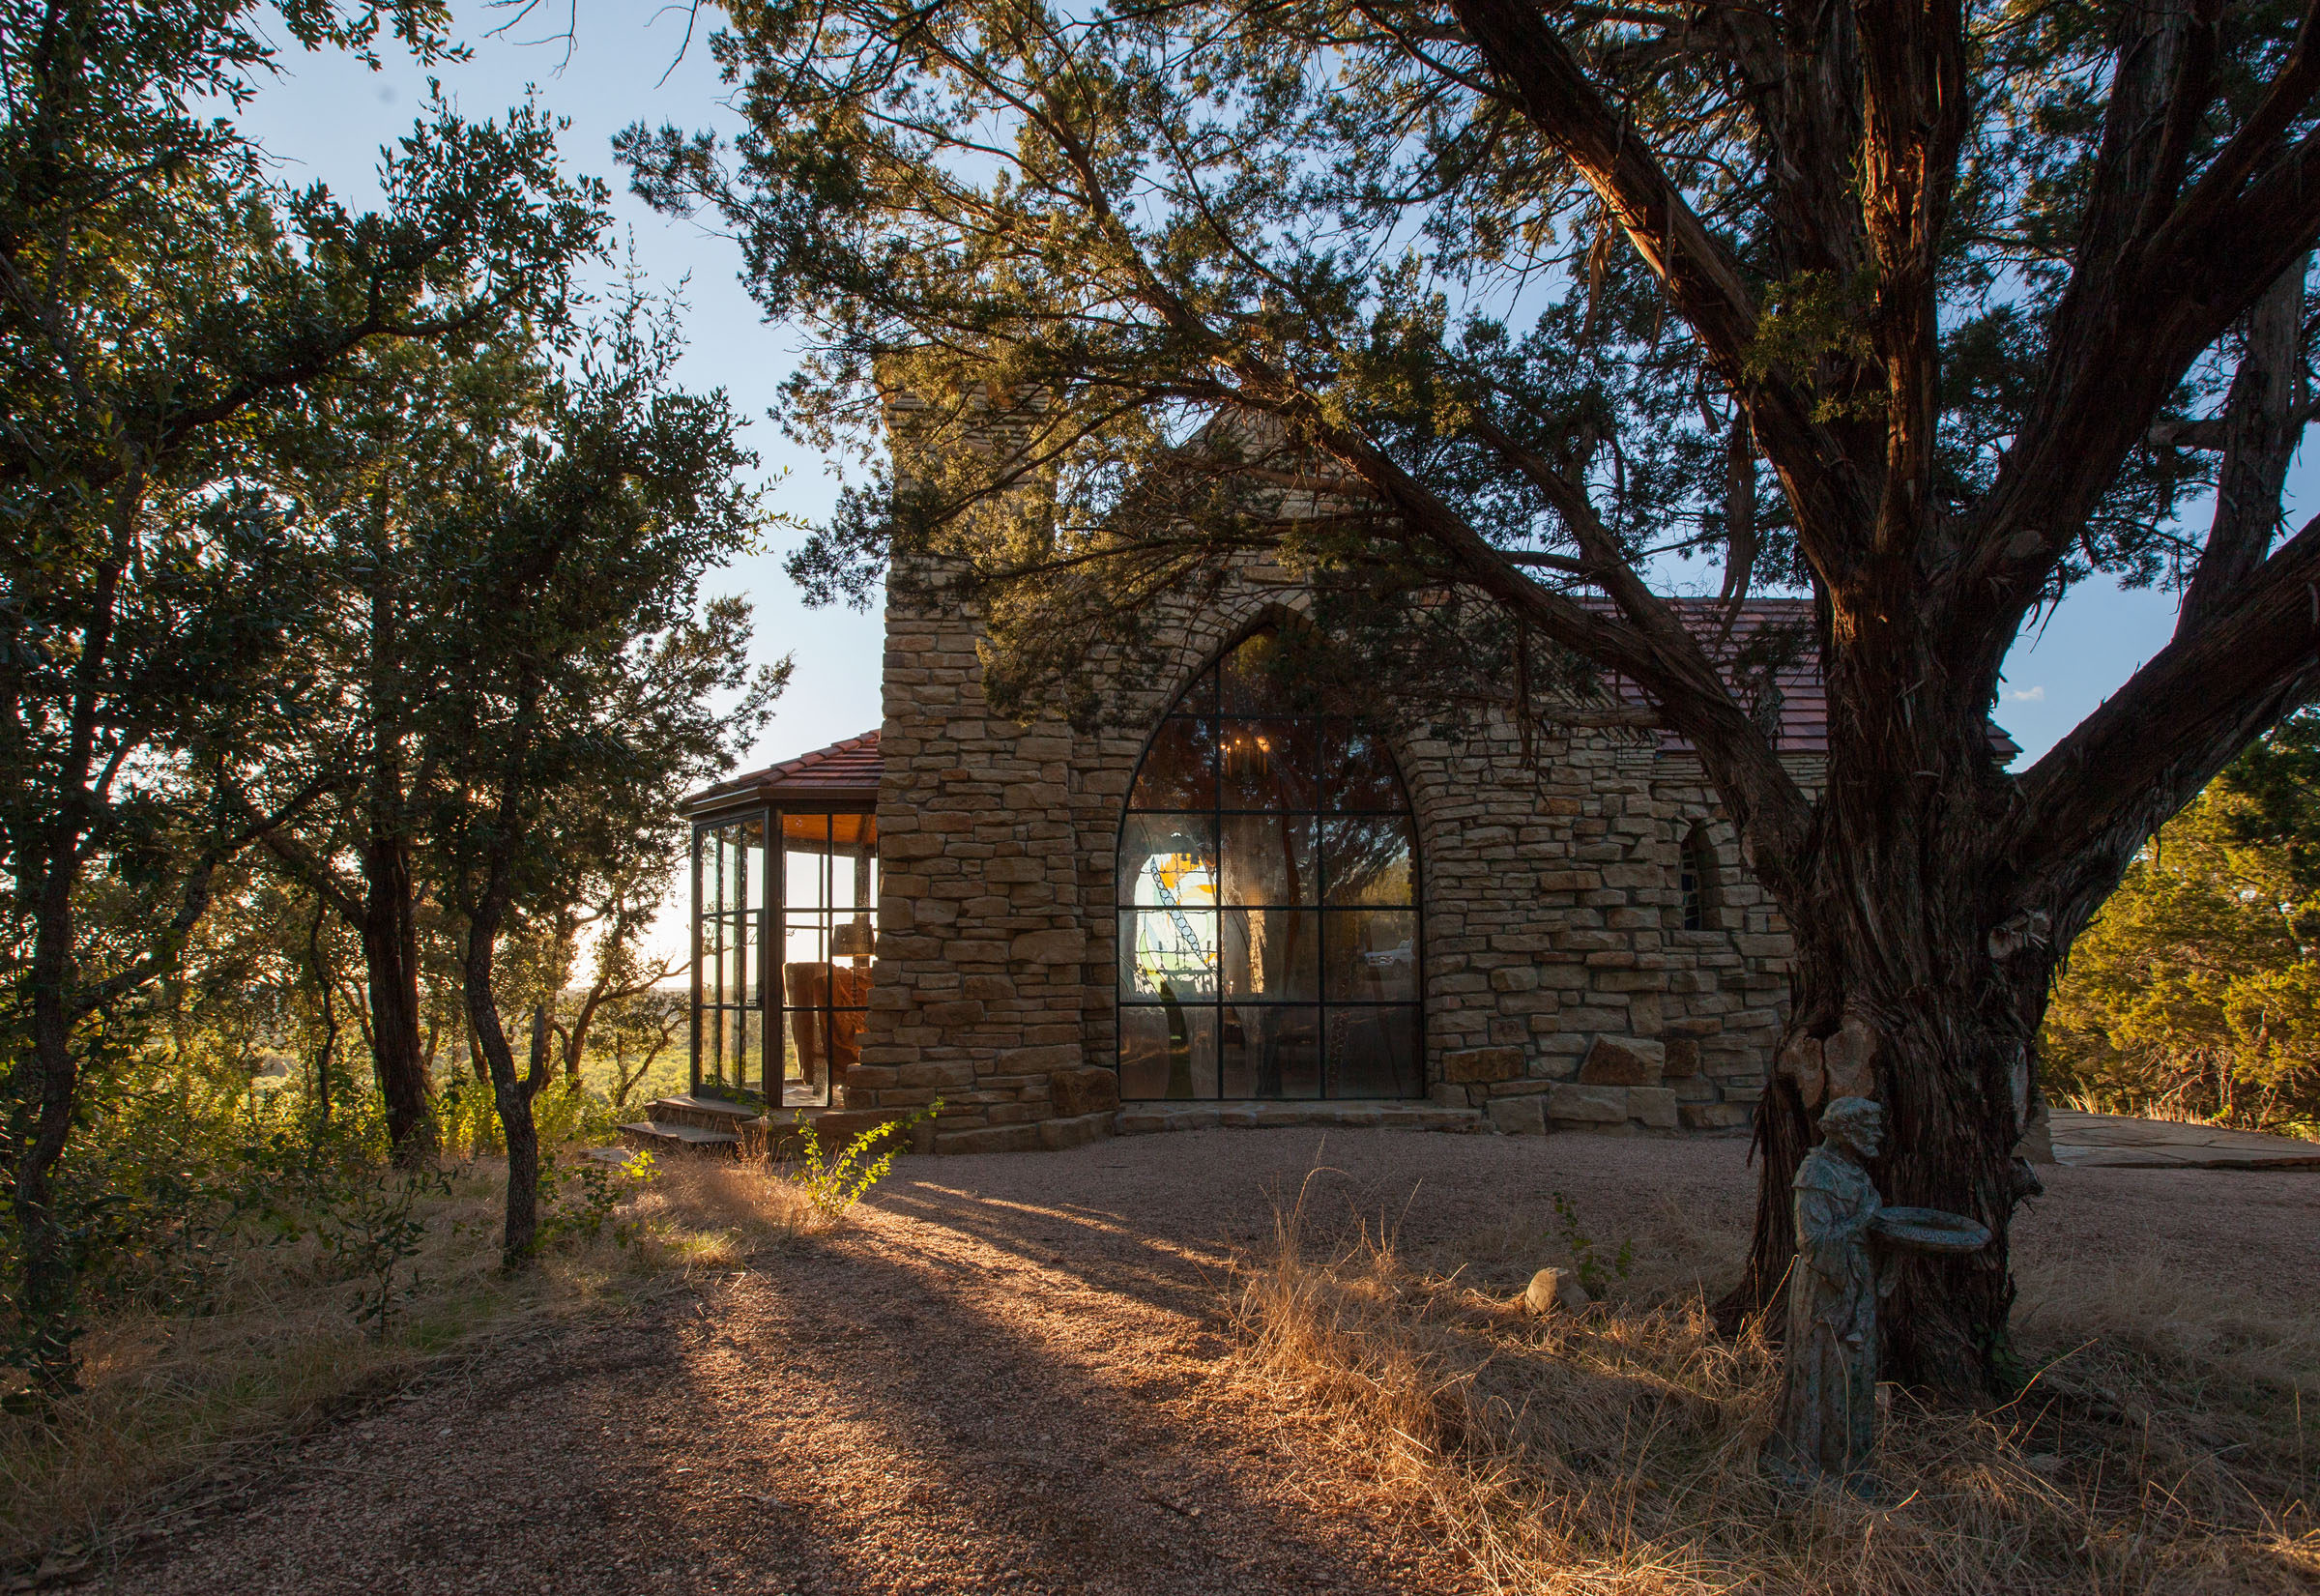 12-021 MT7 Ranch Chapel (NMcWhirter)_049.jpg